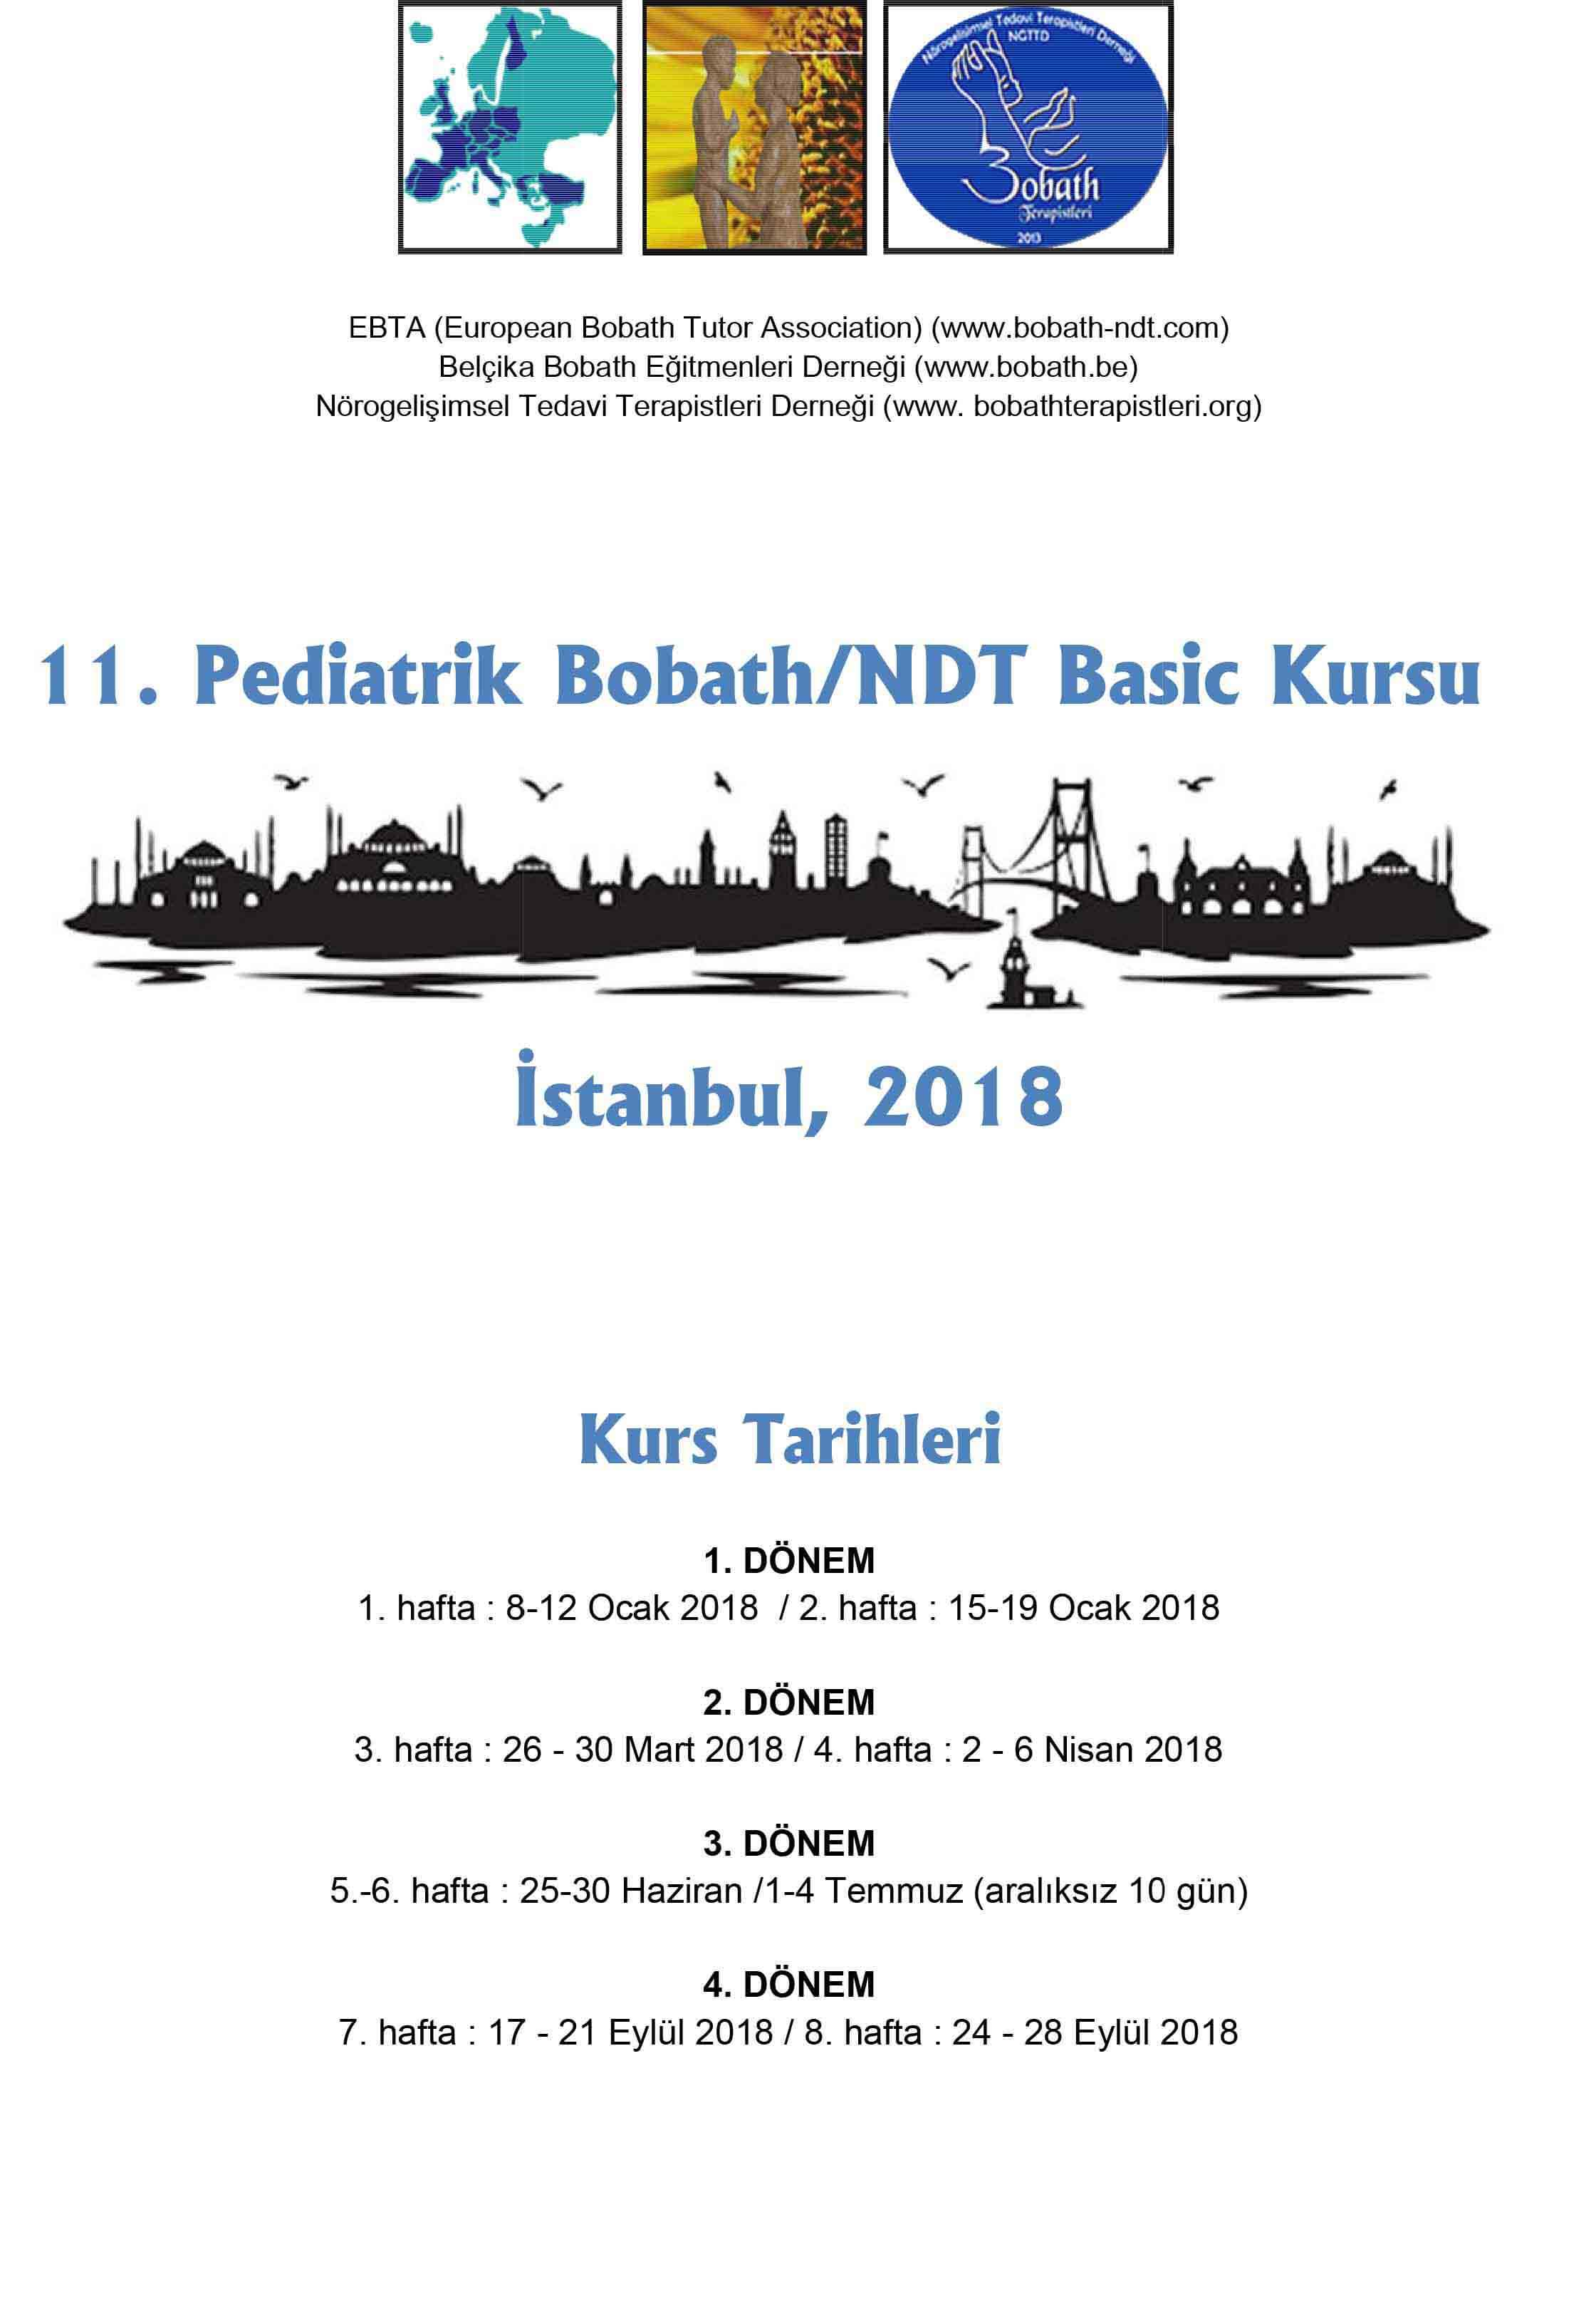 11. Pediatrik Bobath/NDT Basic Kursu